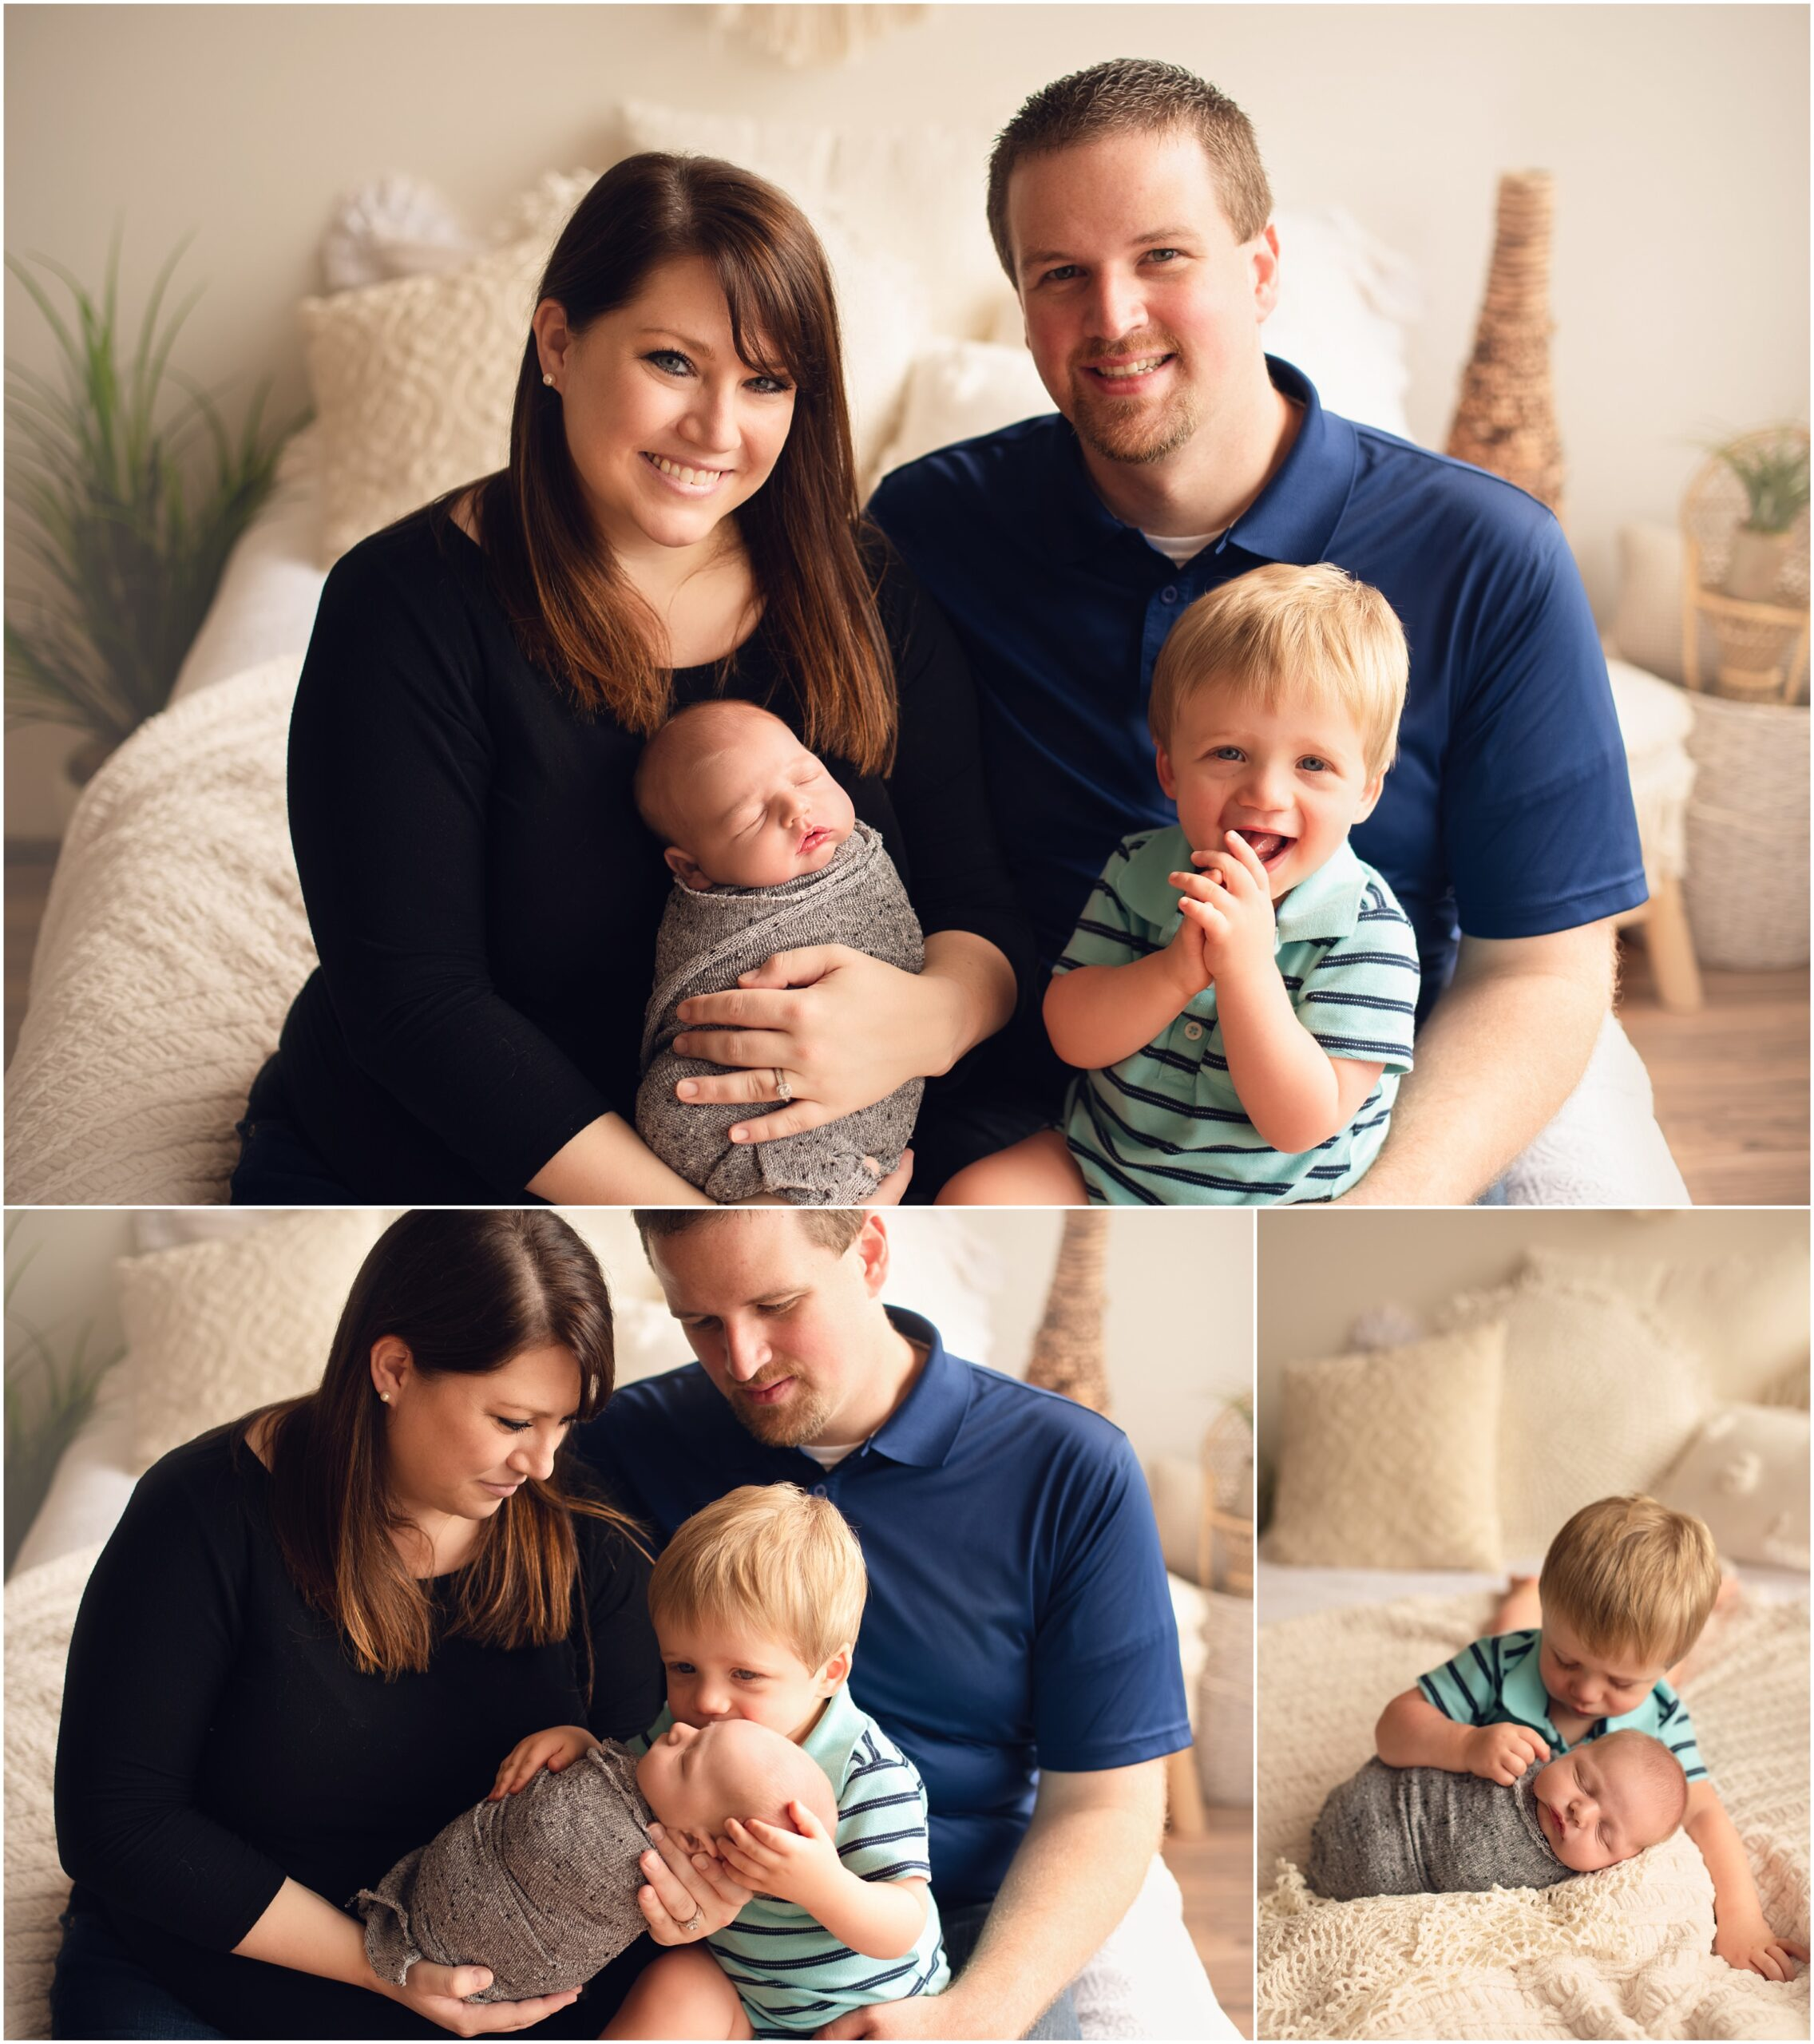 Lifestyle family photos from newborn session